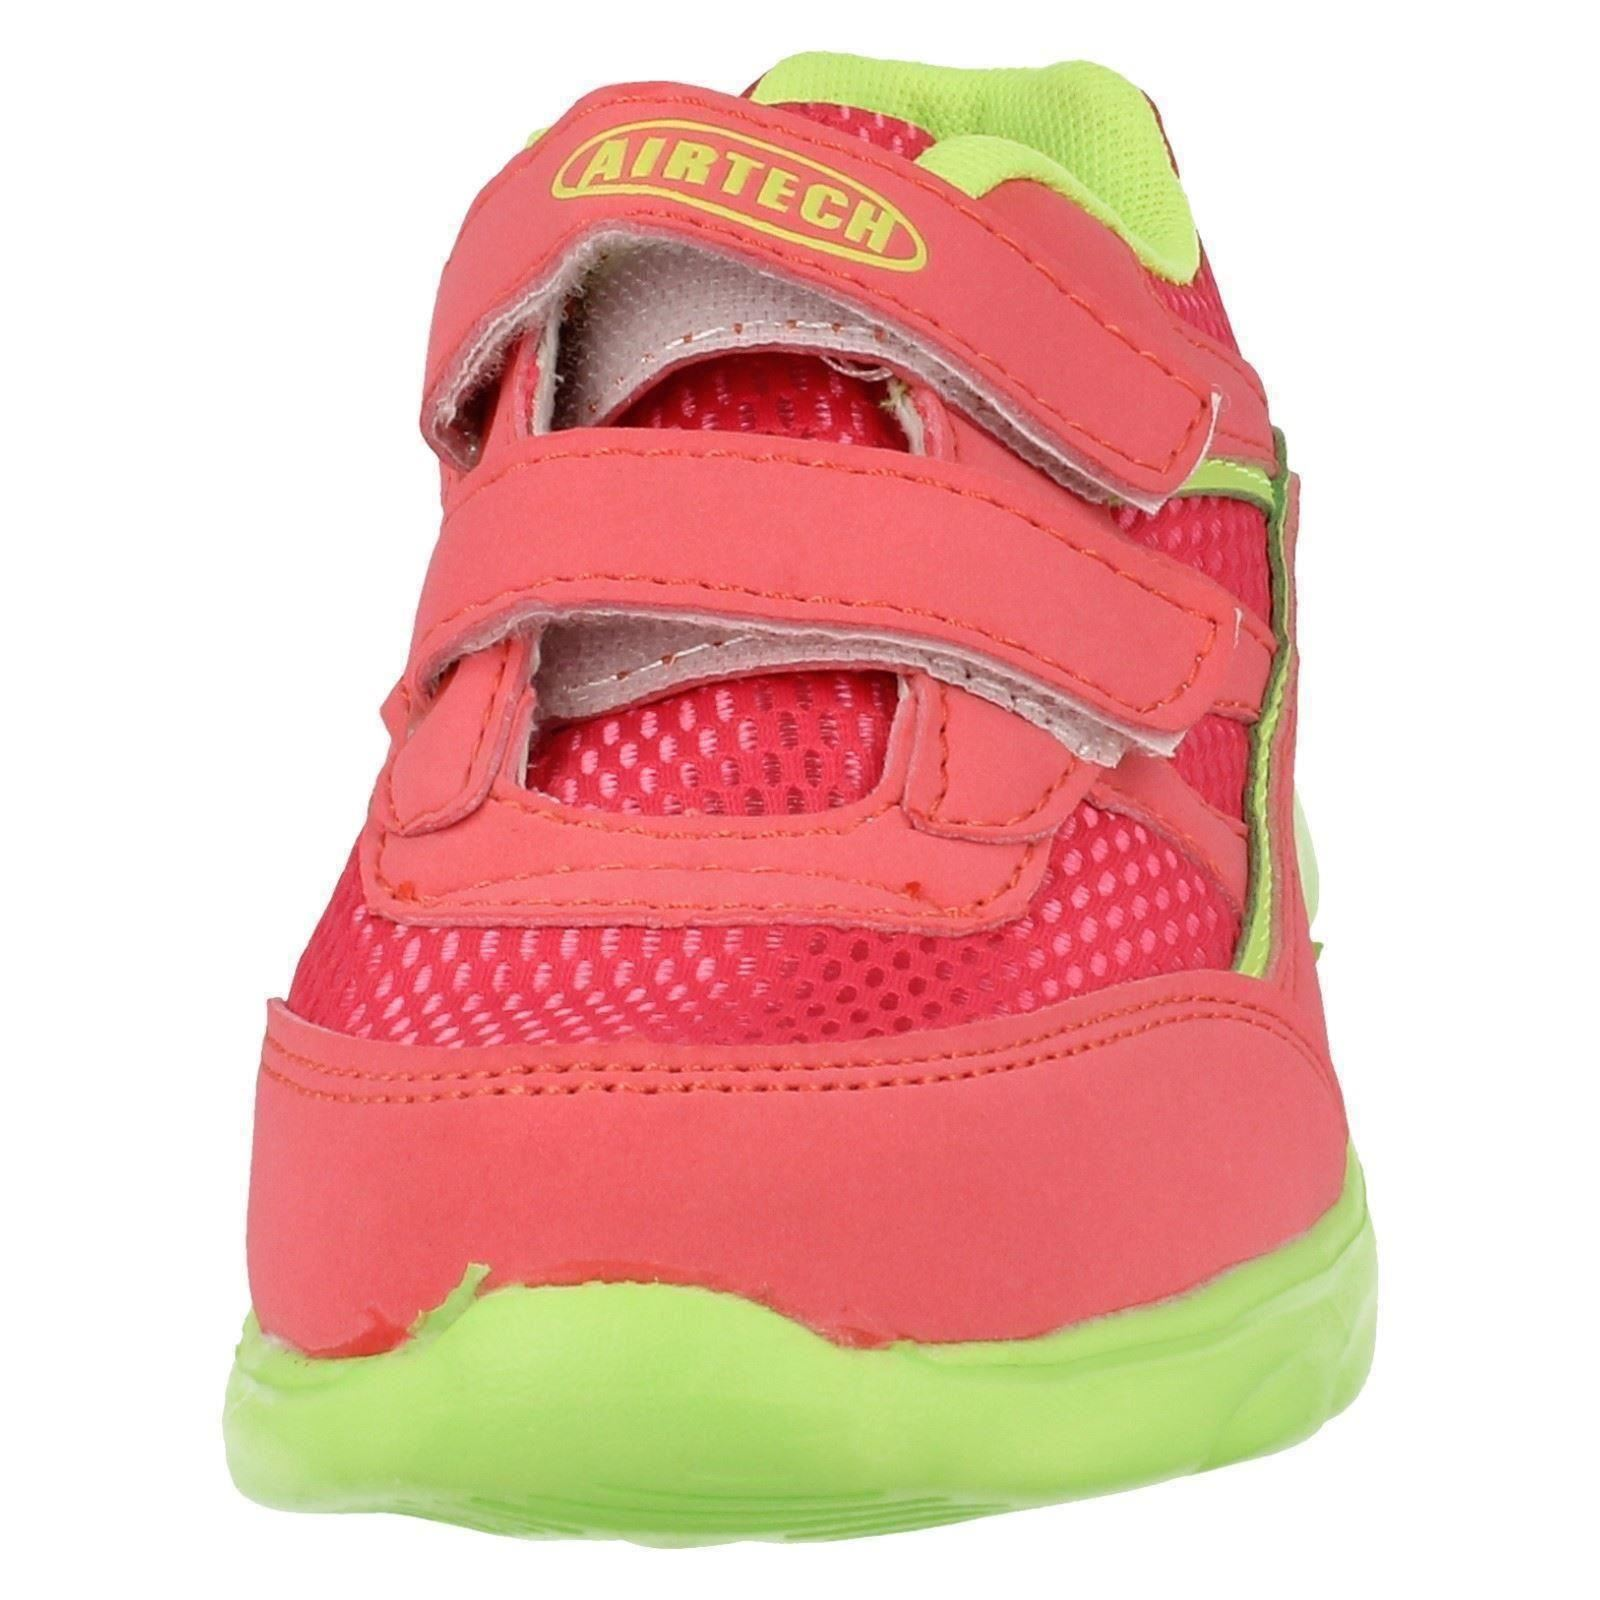 Childrens Boys Girls AirTech Casual Sports Trainers /'Legacy Twin/'